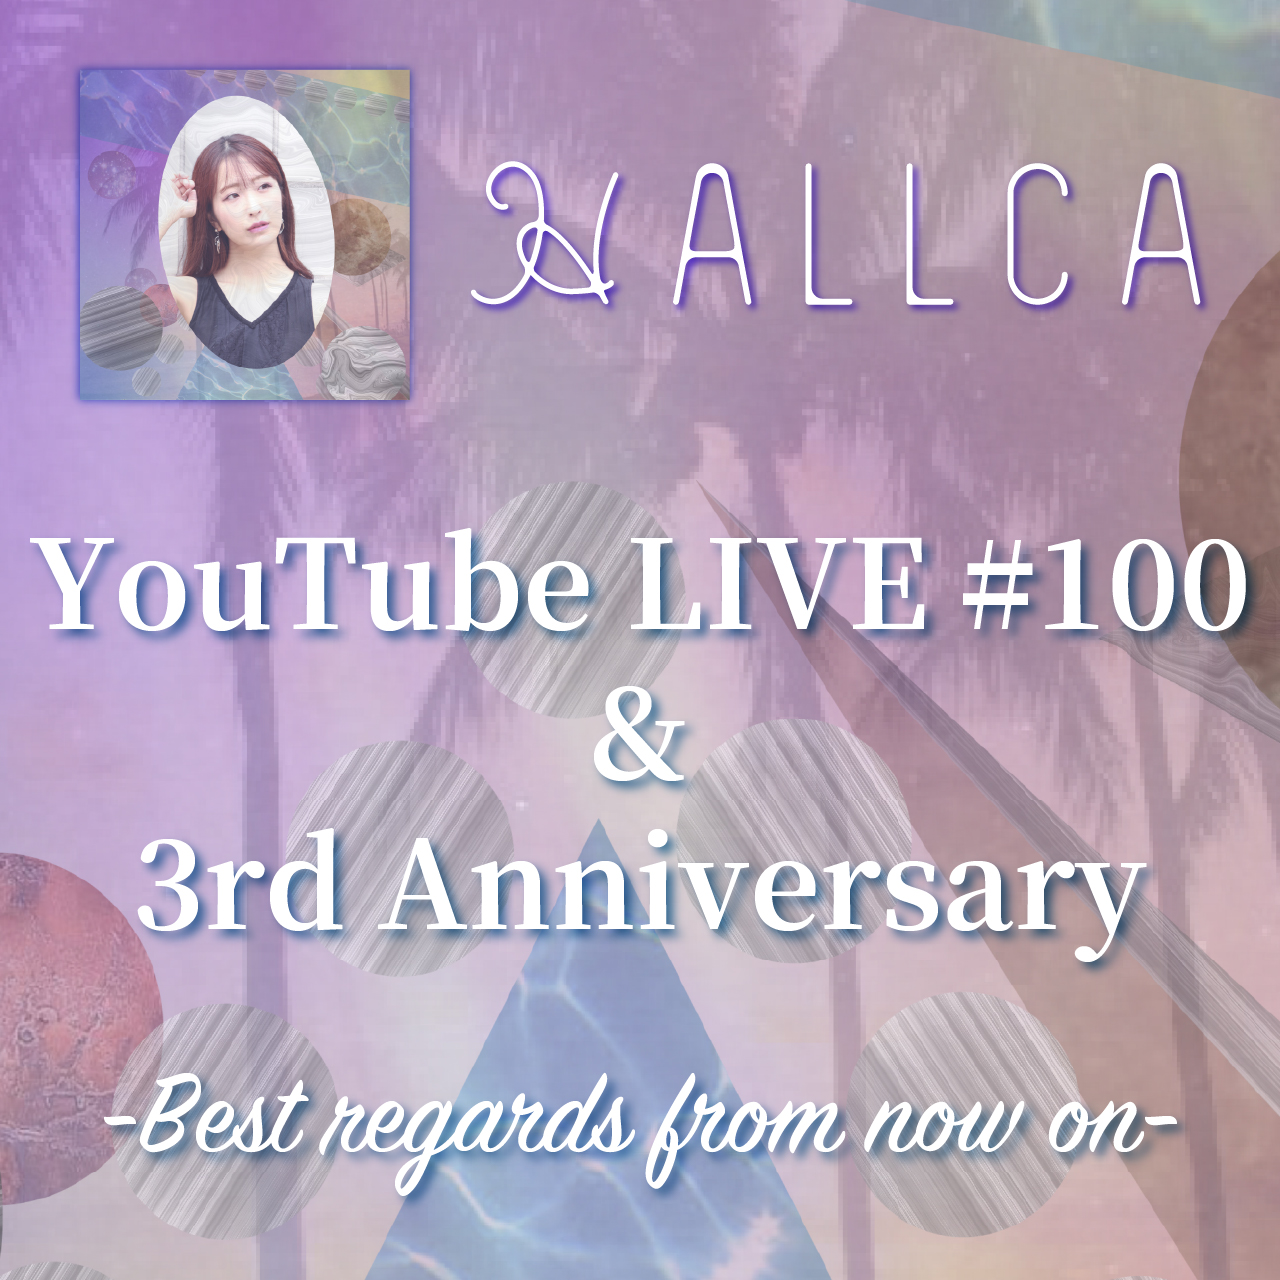 HALLCA YouTube LIVE #100 & 3rd annivessary -Best regards from now on-